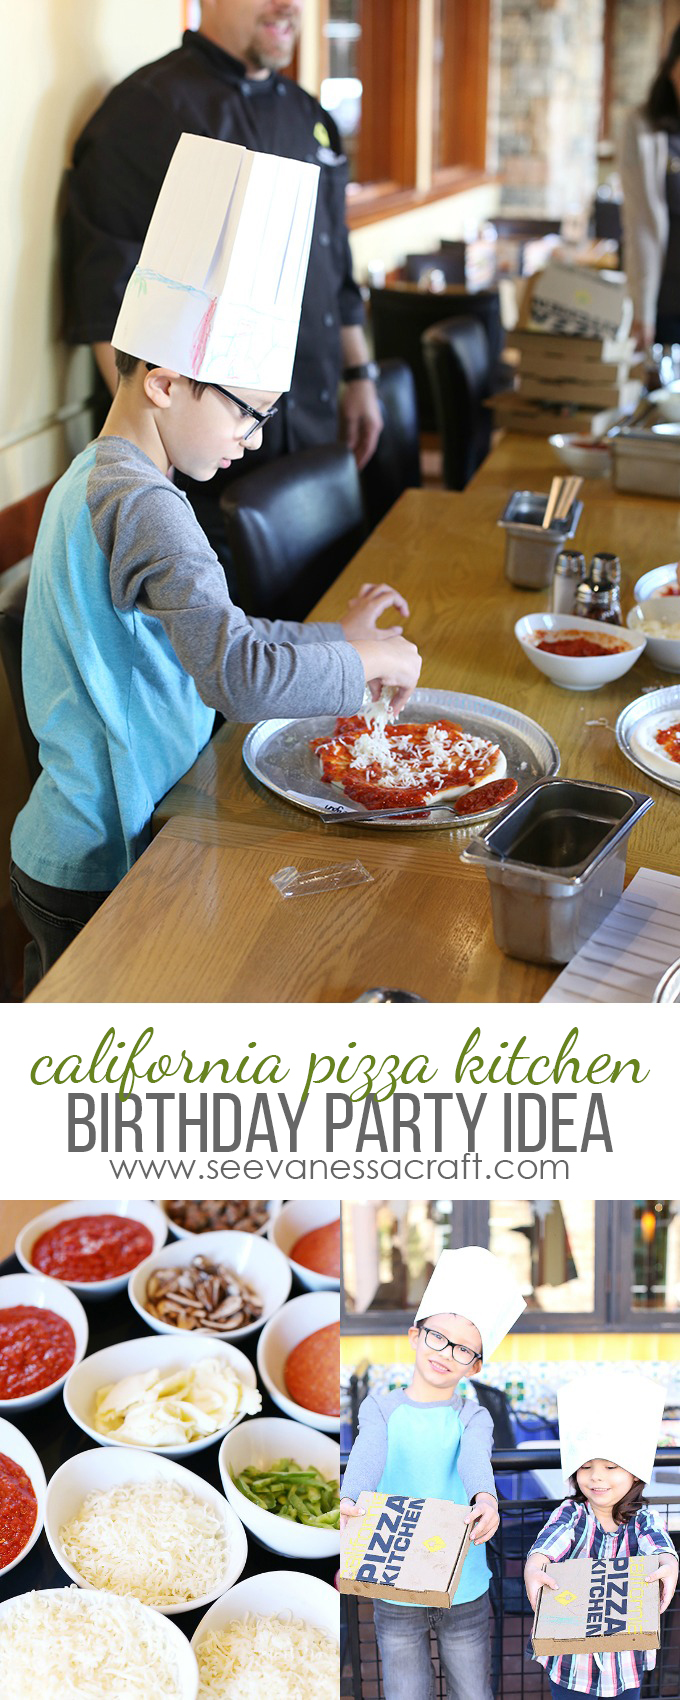 5-reasons-to-host-a-birthday-party-at-california-pizza-kitchen-copy